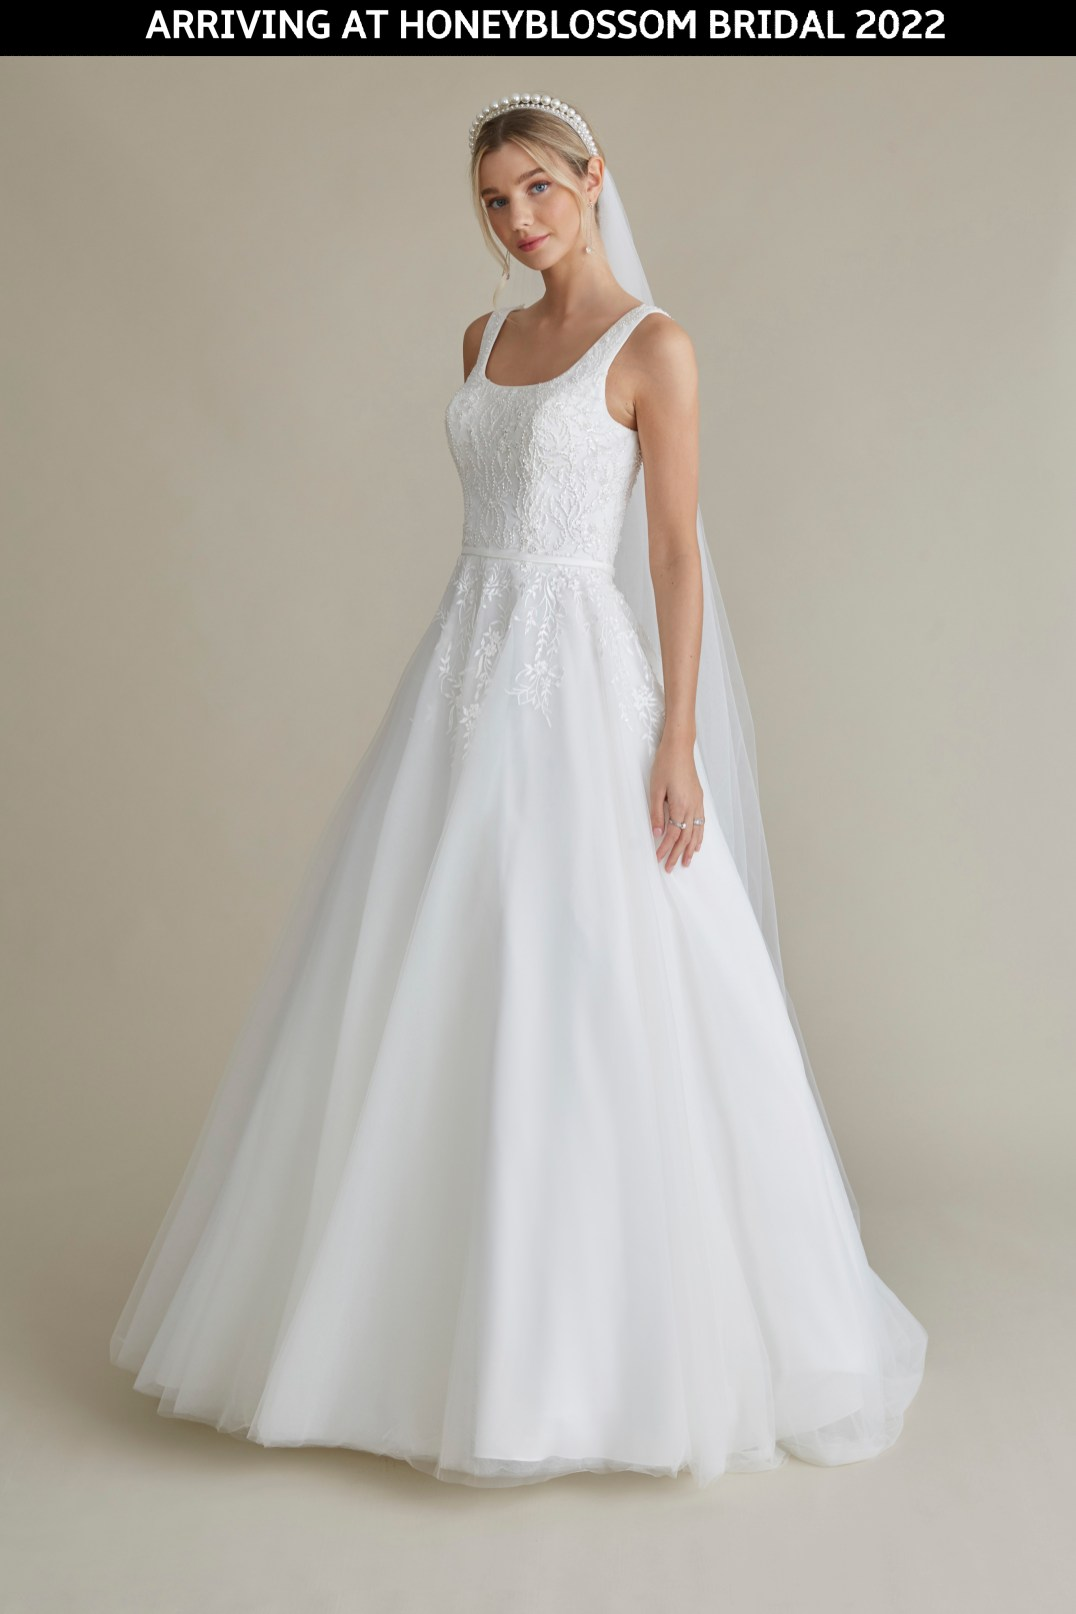 MiaMia Elle wedding gown arriving soon to Honeyblossom Bridal